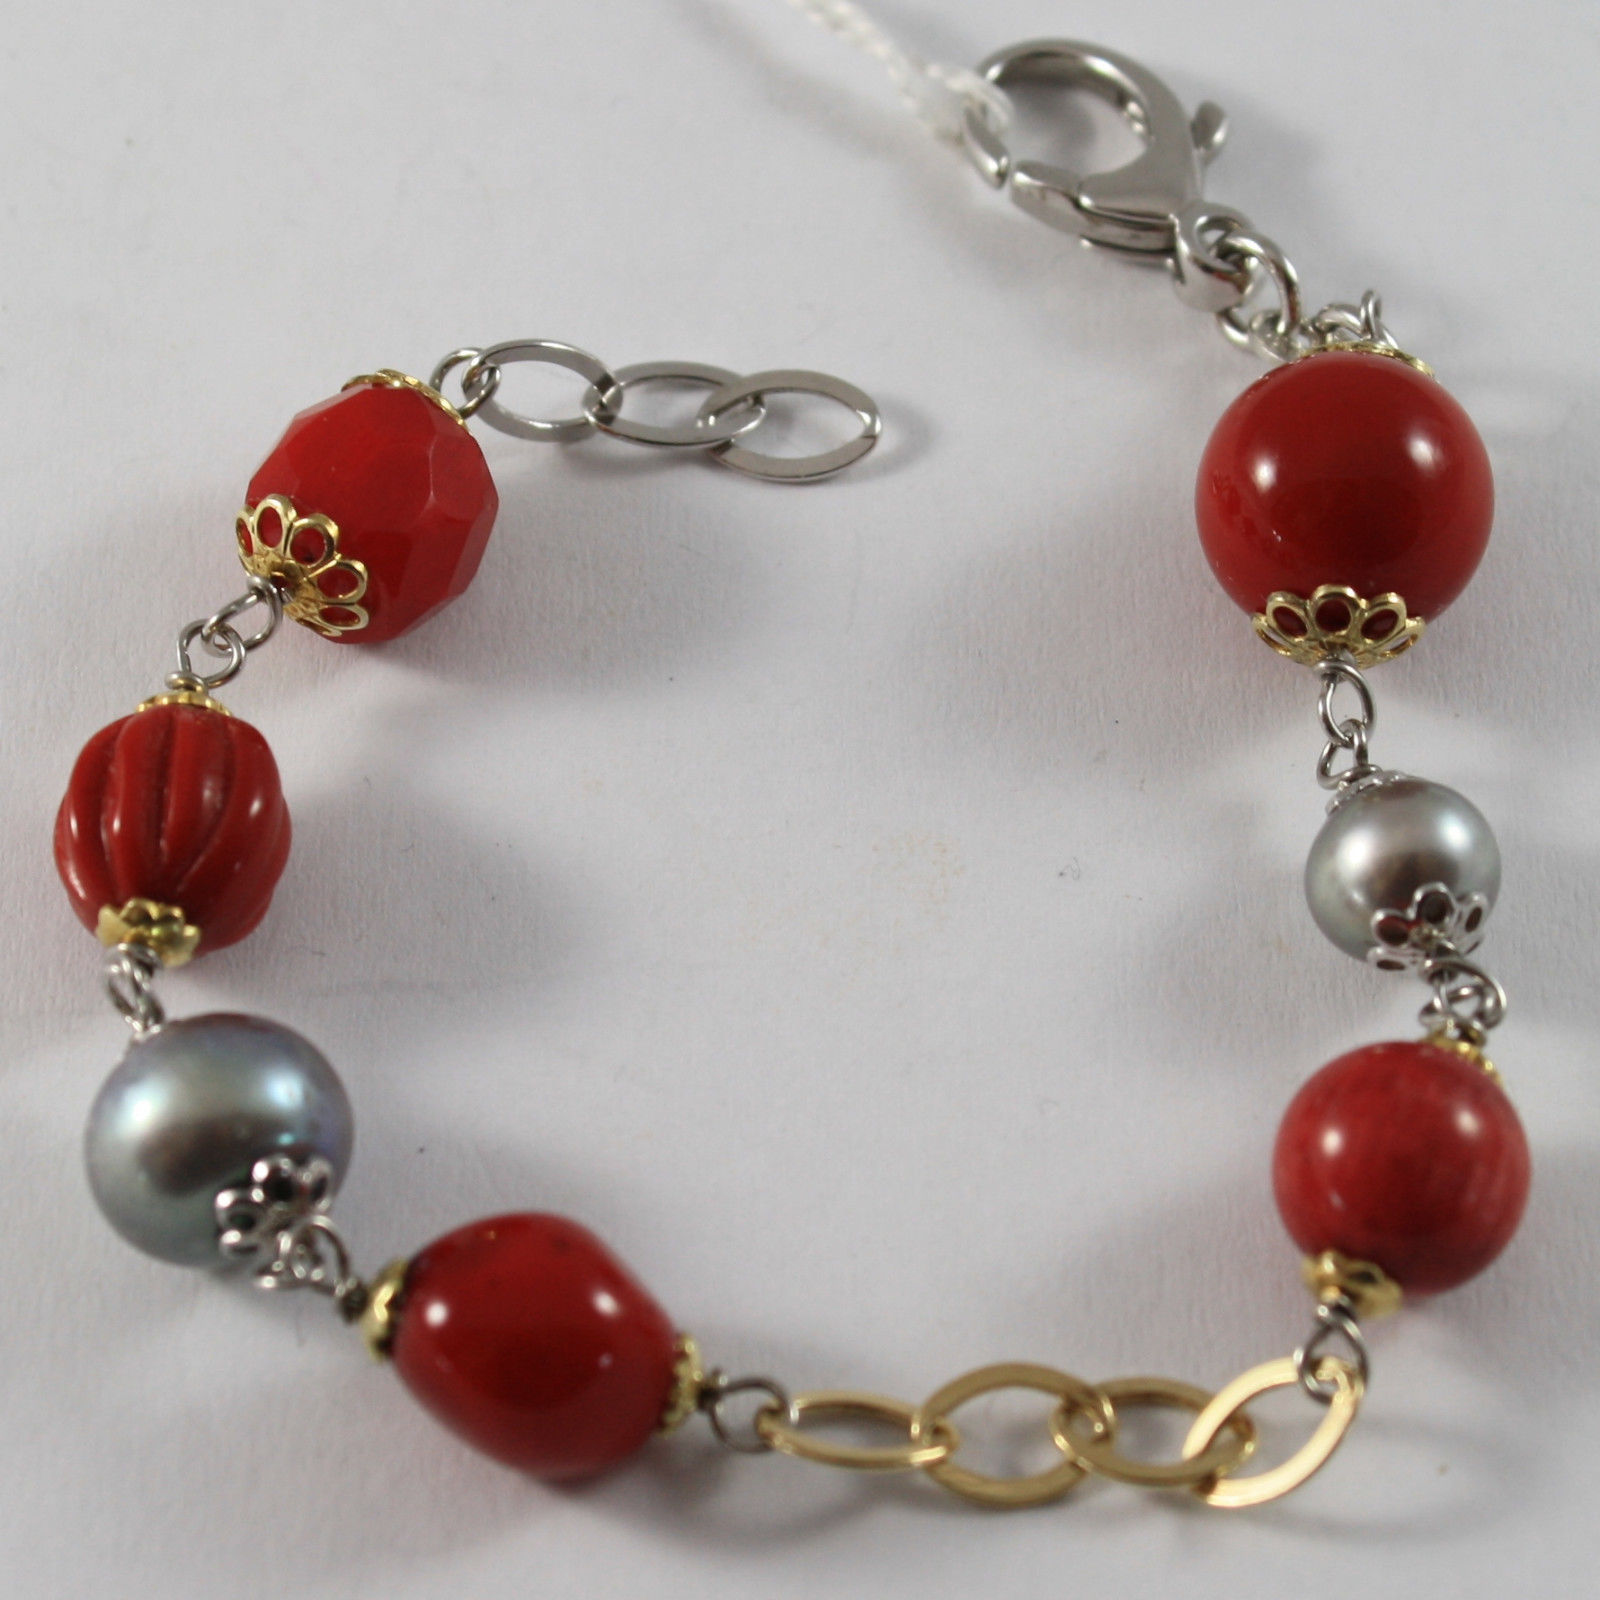 .925 RHODIUM SILVER GOLD PLATED BRACELET WITH GRAY PEARLS AND CORAL BAMBOO